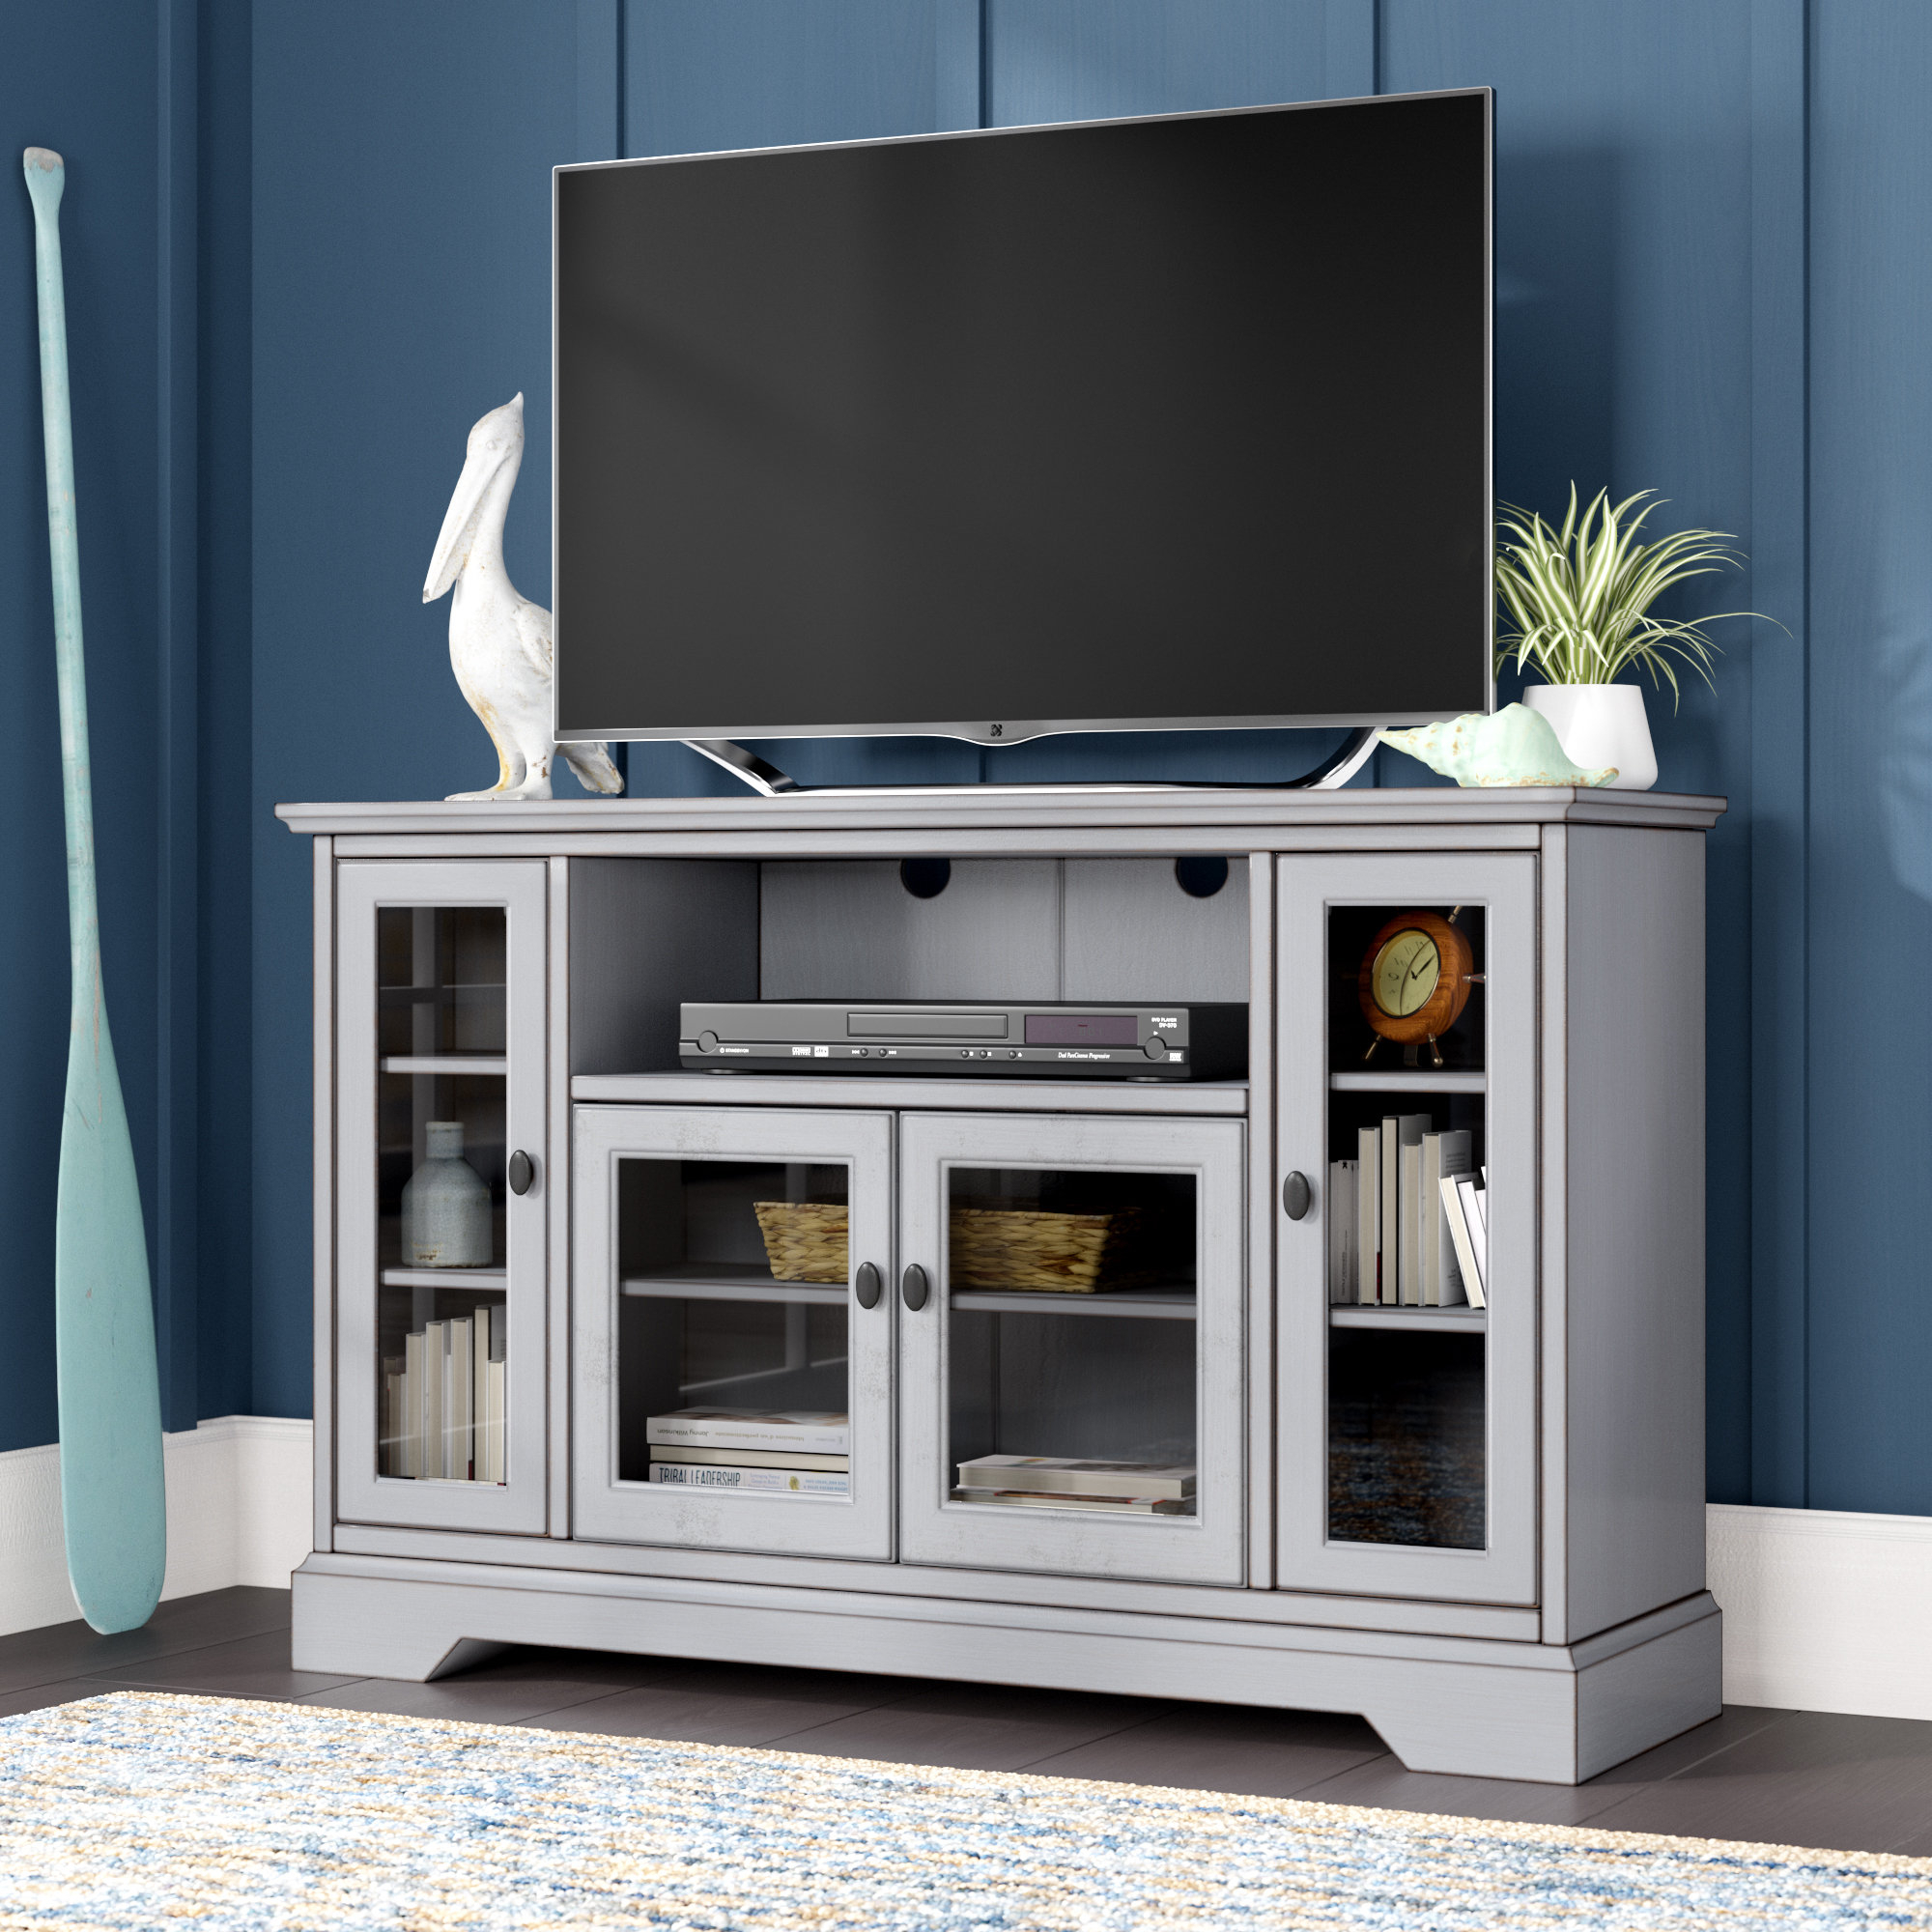 Tall Narrow Tv Stand | Wayfair with regard to Wyatt 68 Inch Tv Stands (Image 22 of 30)